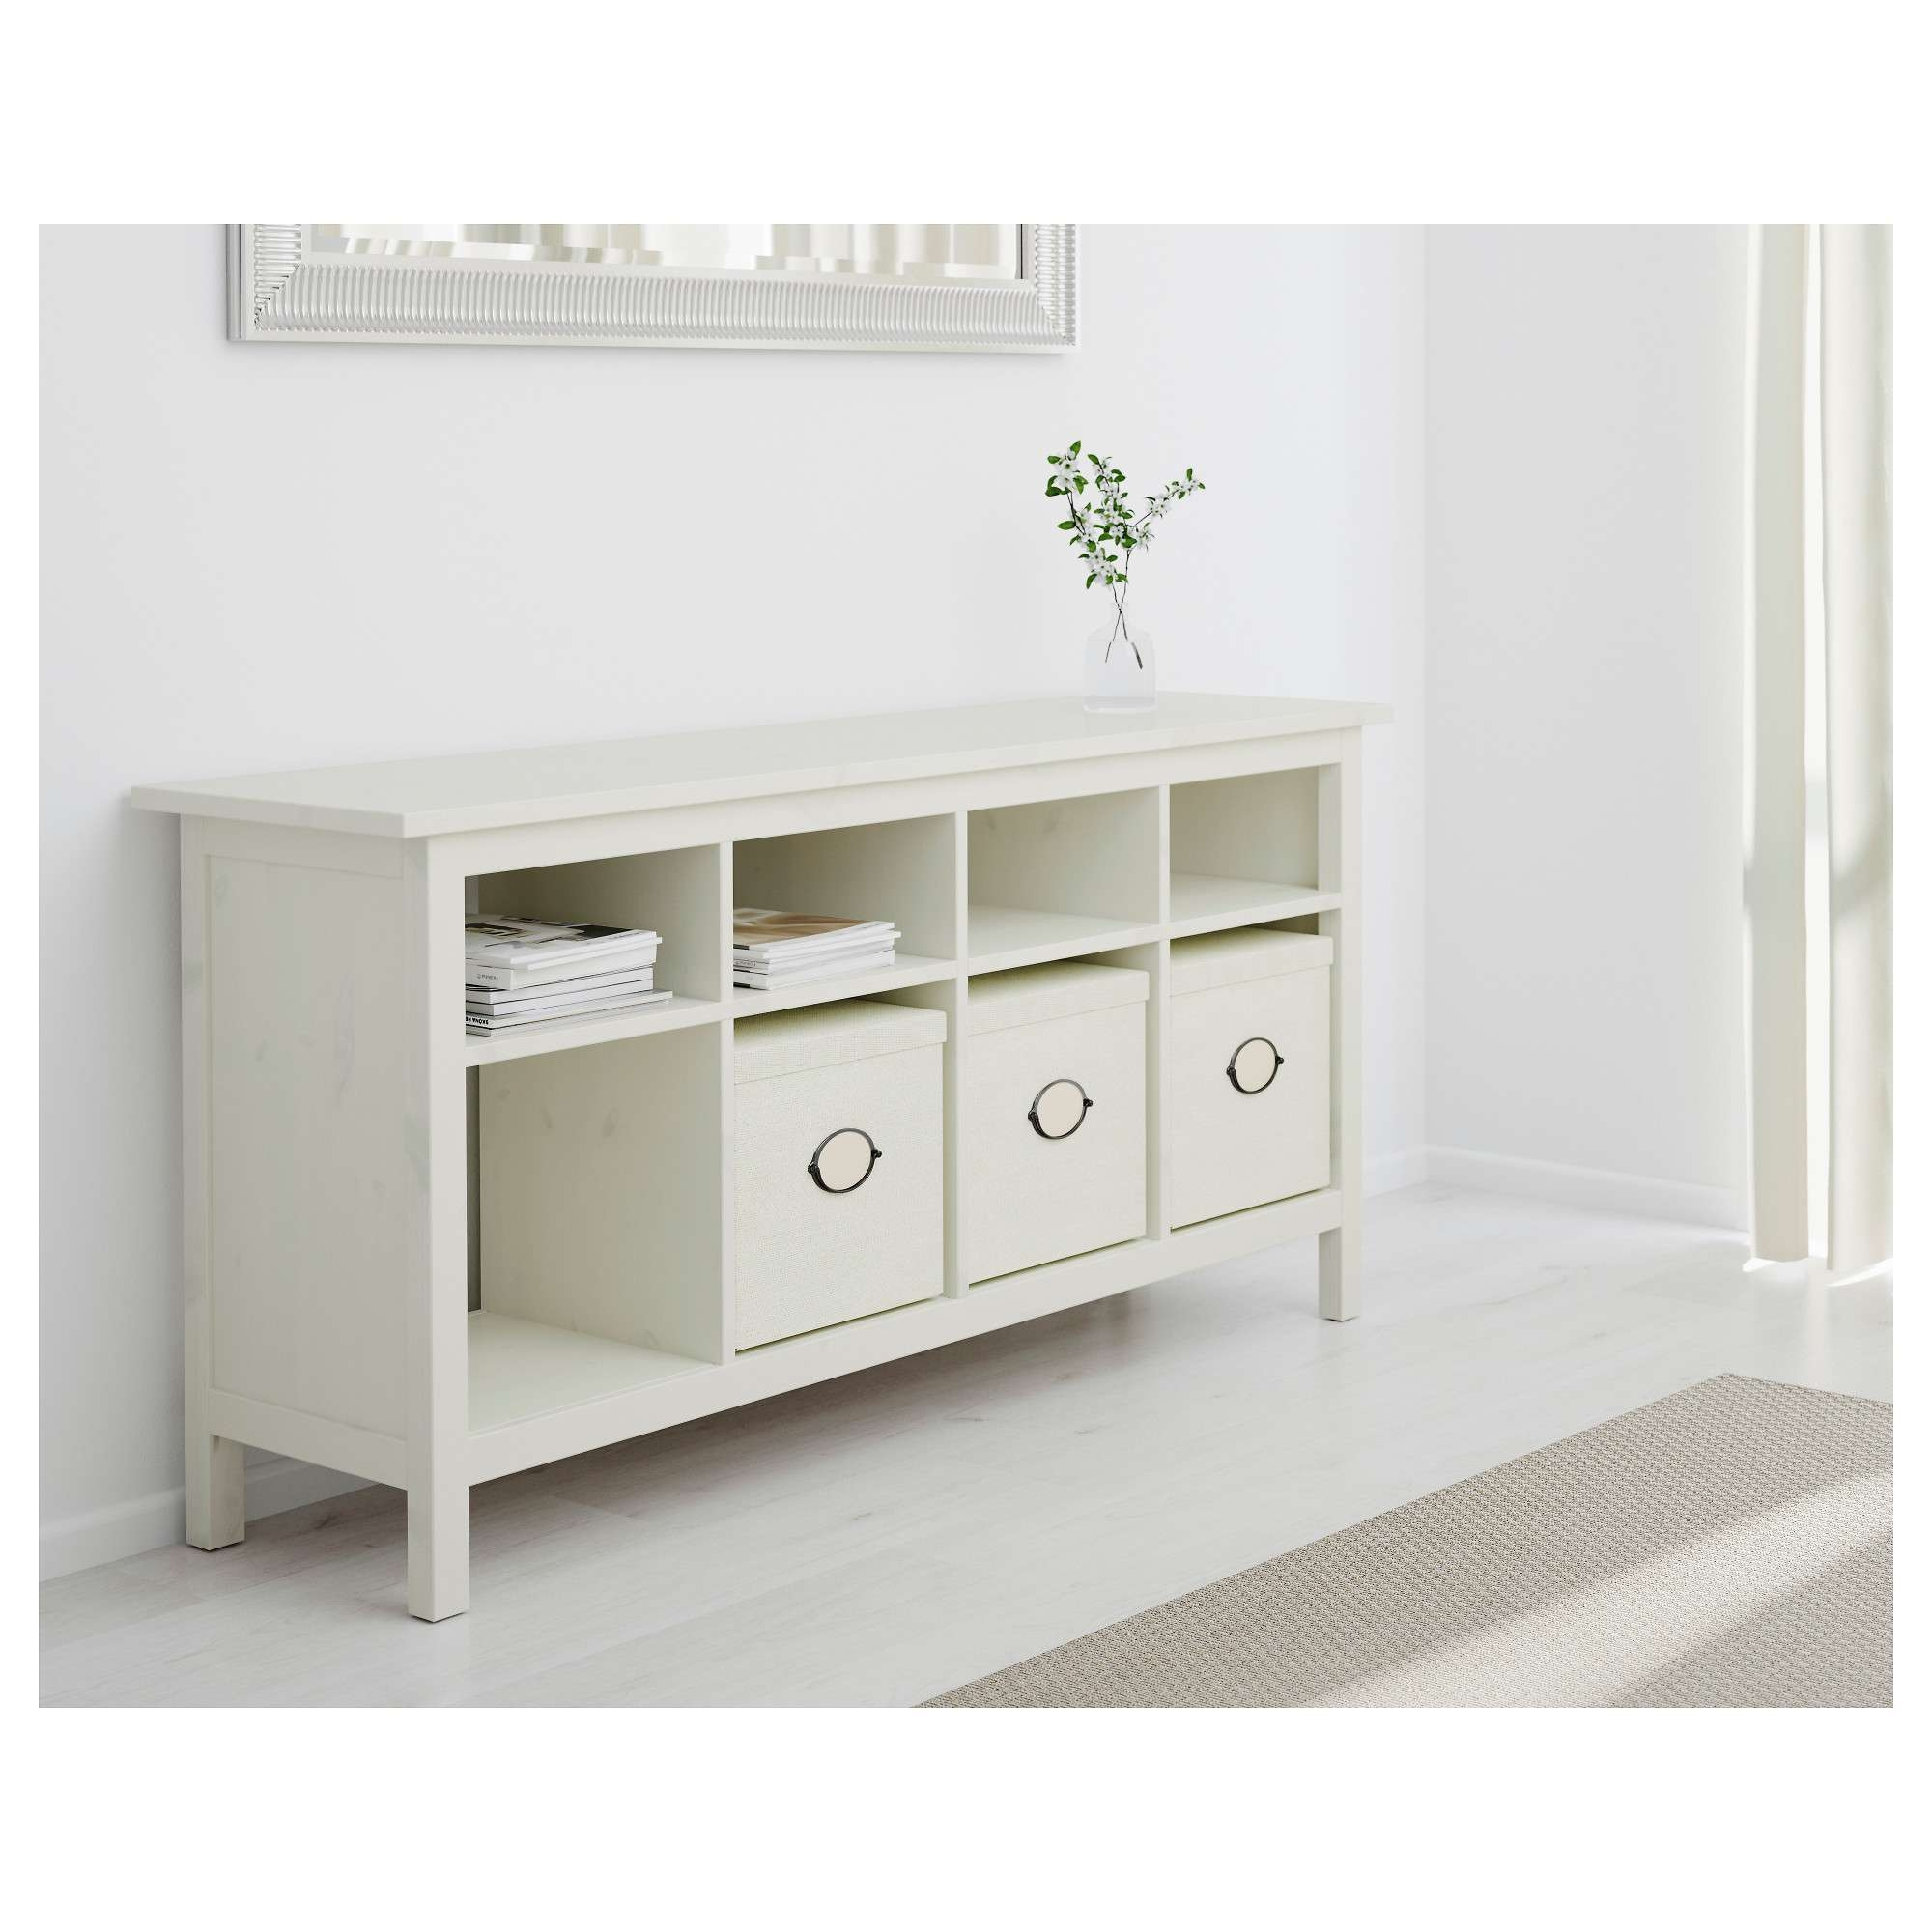 Hemnes Console Table White Stain 157X40 Cm – Ikea Throughout Ikea Hemnes Sideboards (View 4 of 20)